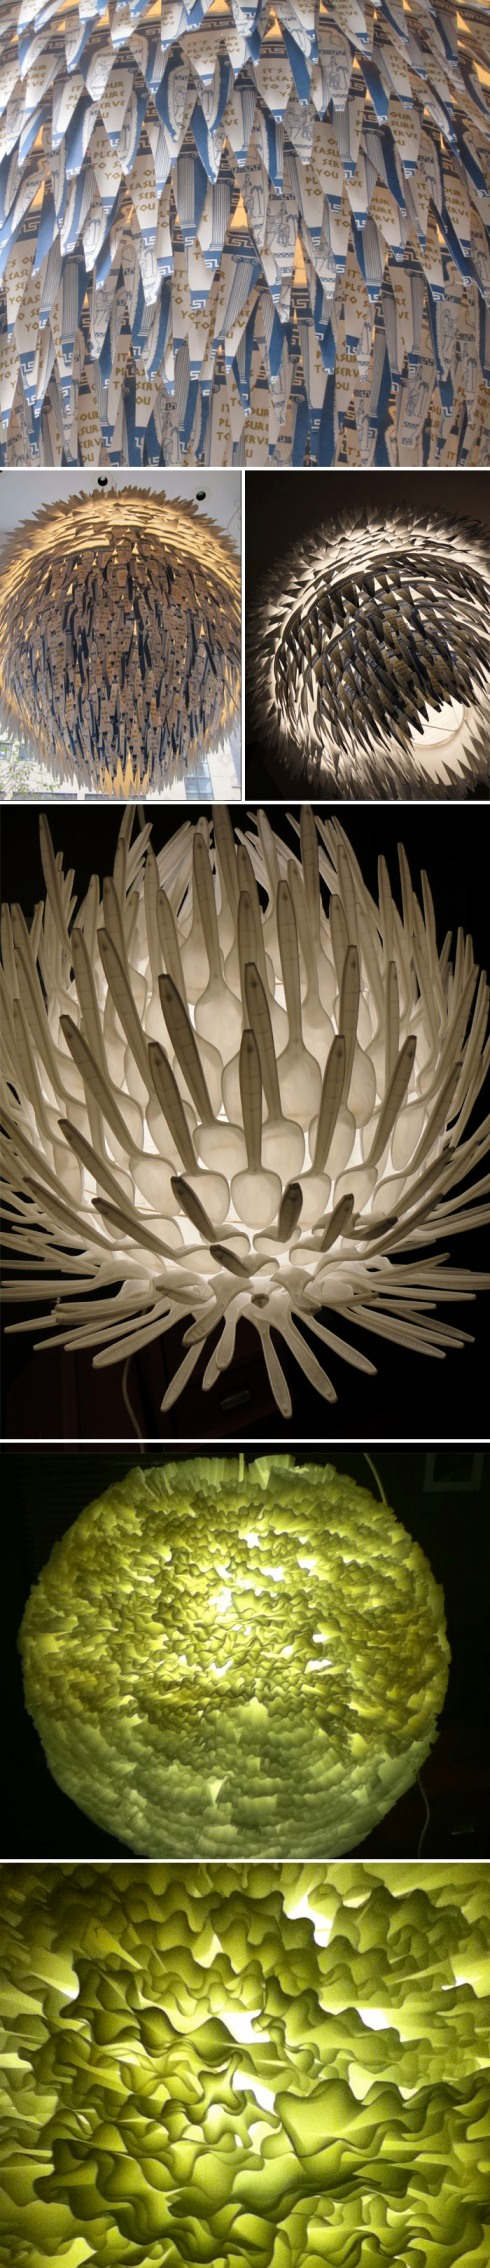 Chris DuCharme, cool lamps, coffee cups, filters, spoons, collabcubed